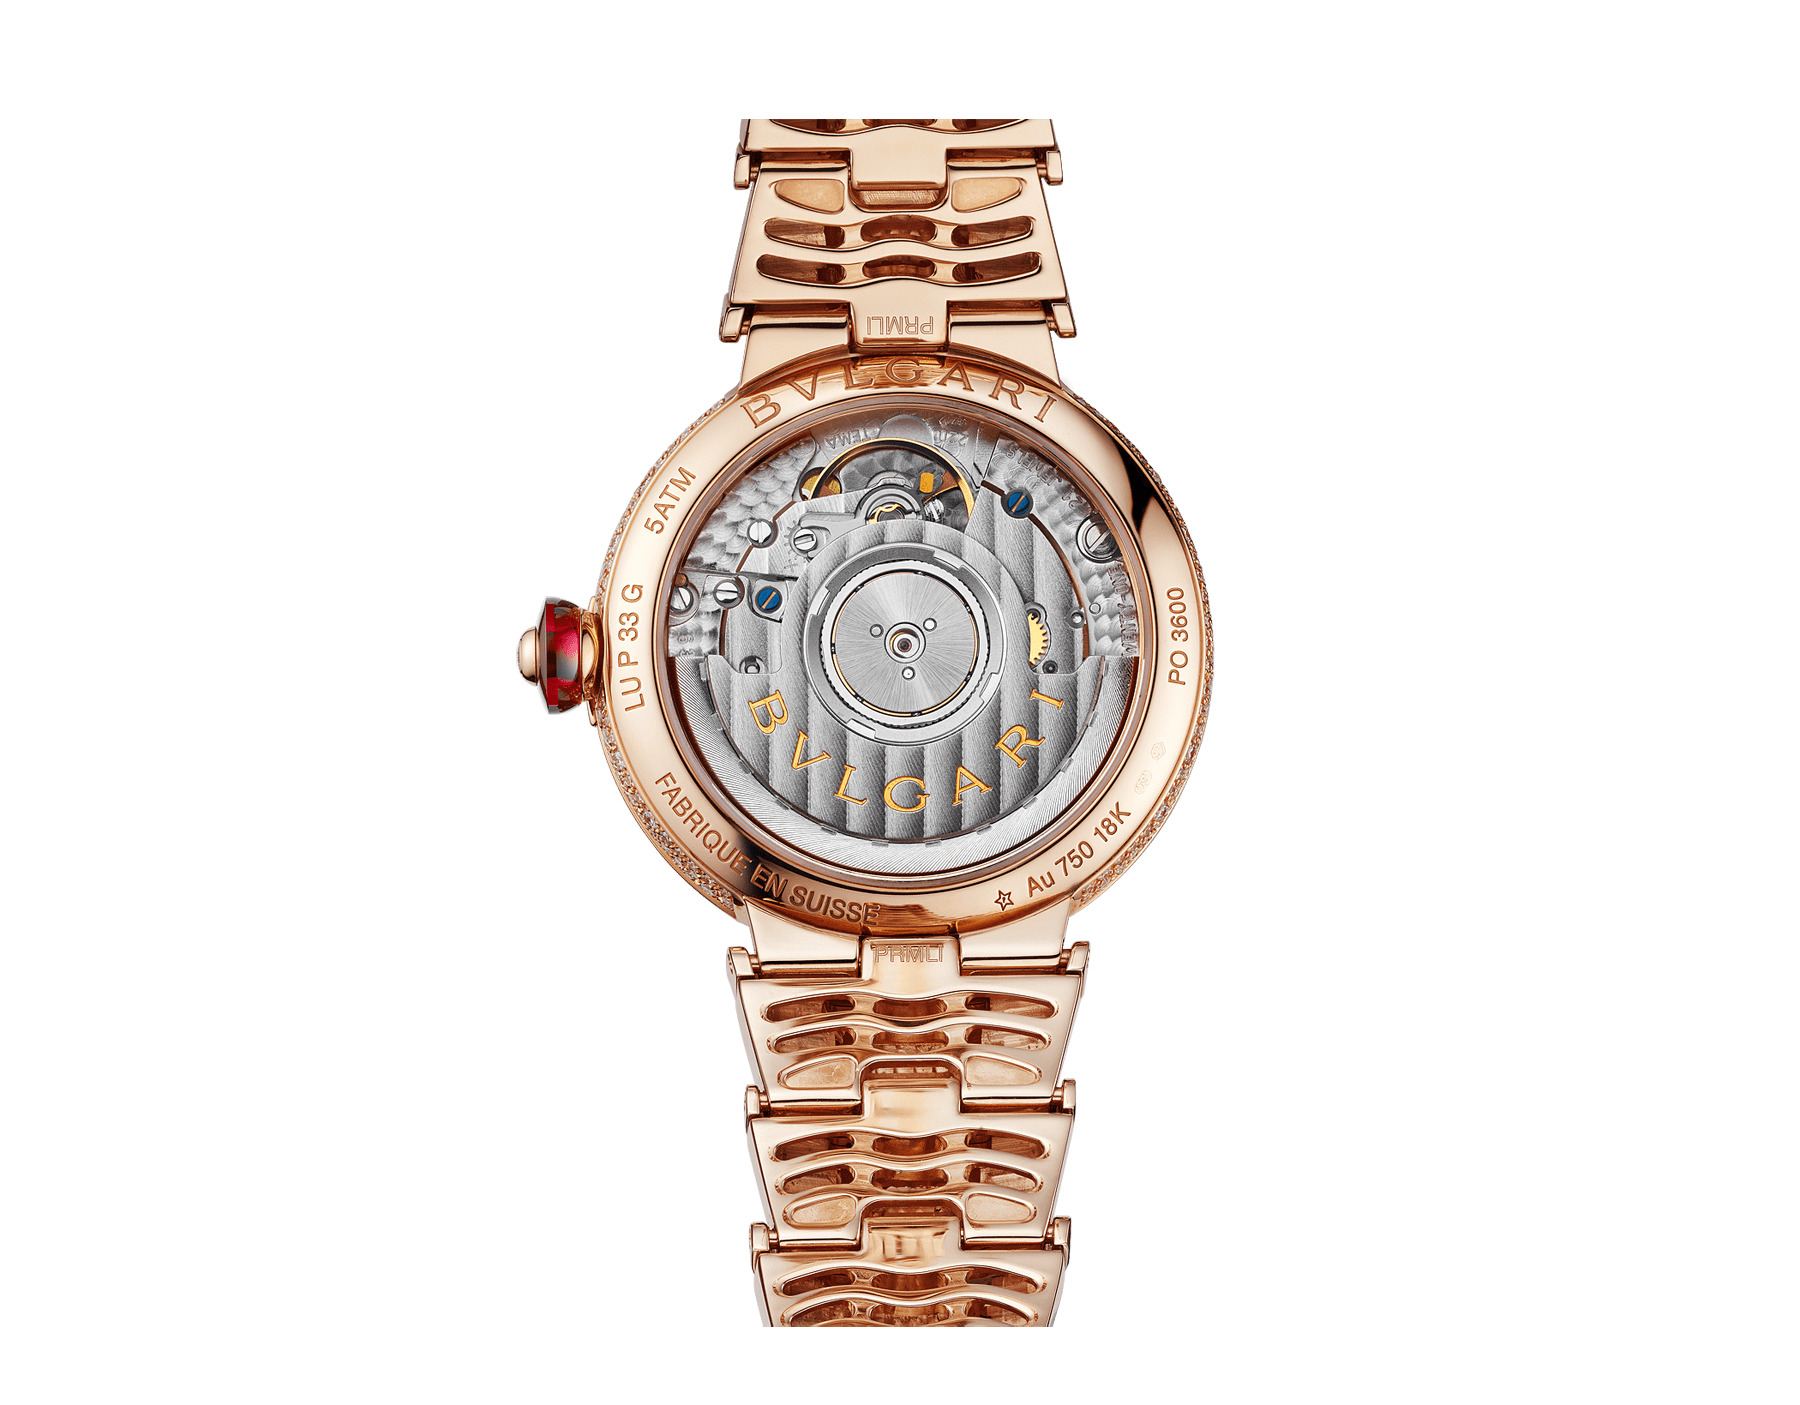 LVCEA watch in 18kt rose gold case and bracelet, both set with brilliant-cut diamonds, and full pavé diamond dial. 102617 image 4